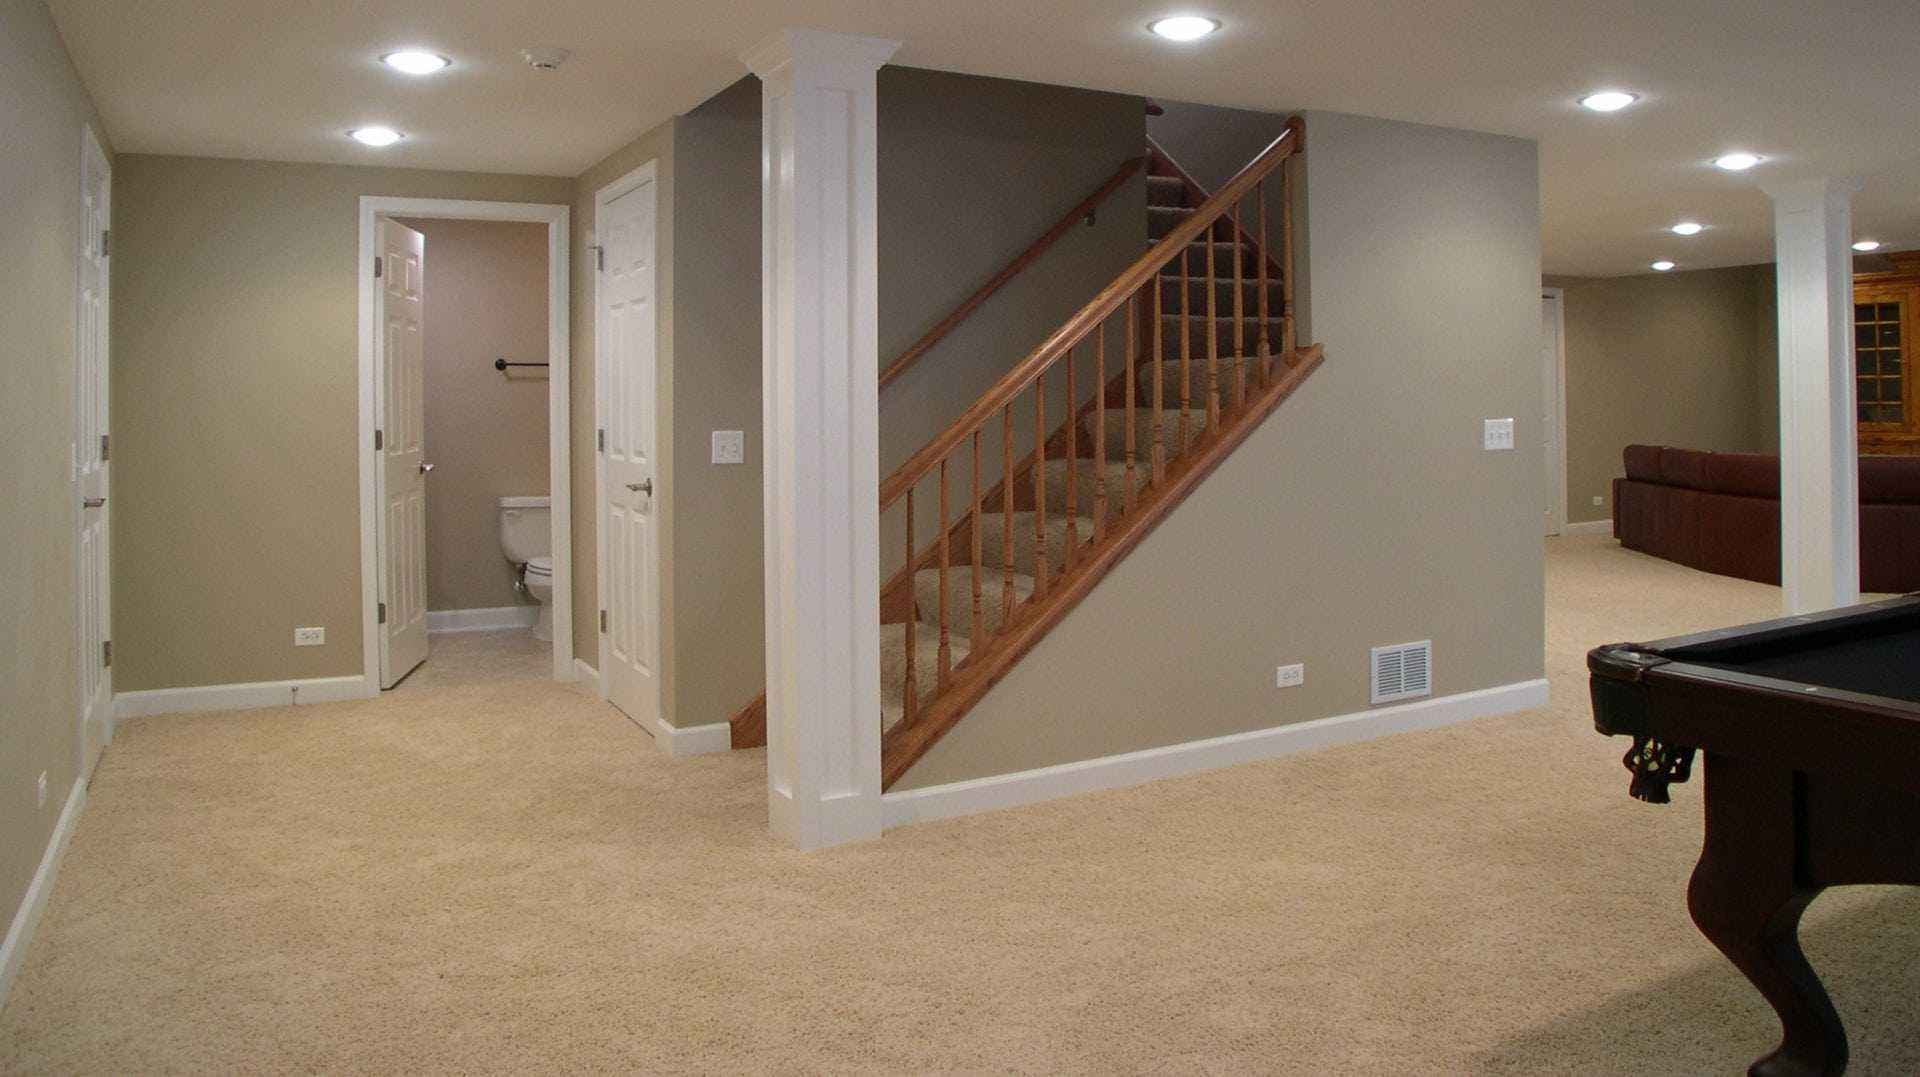 Basement remodeling fred remodeling contractors chicago for Remodeling companies